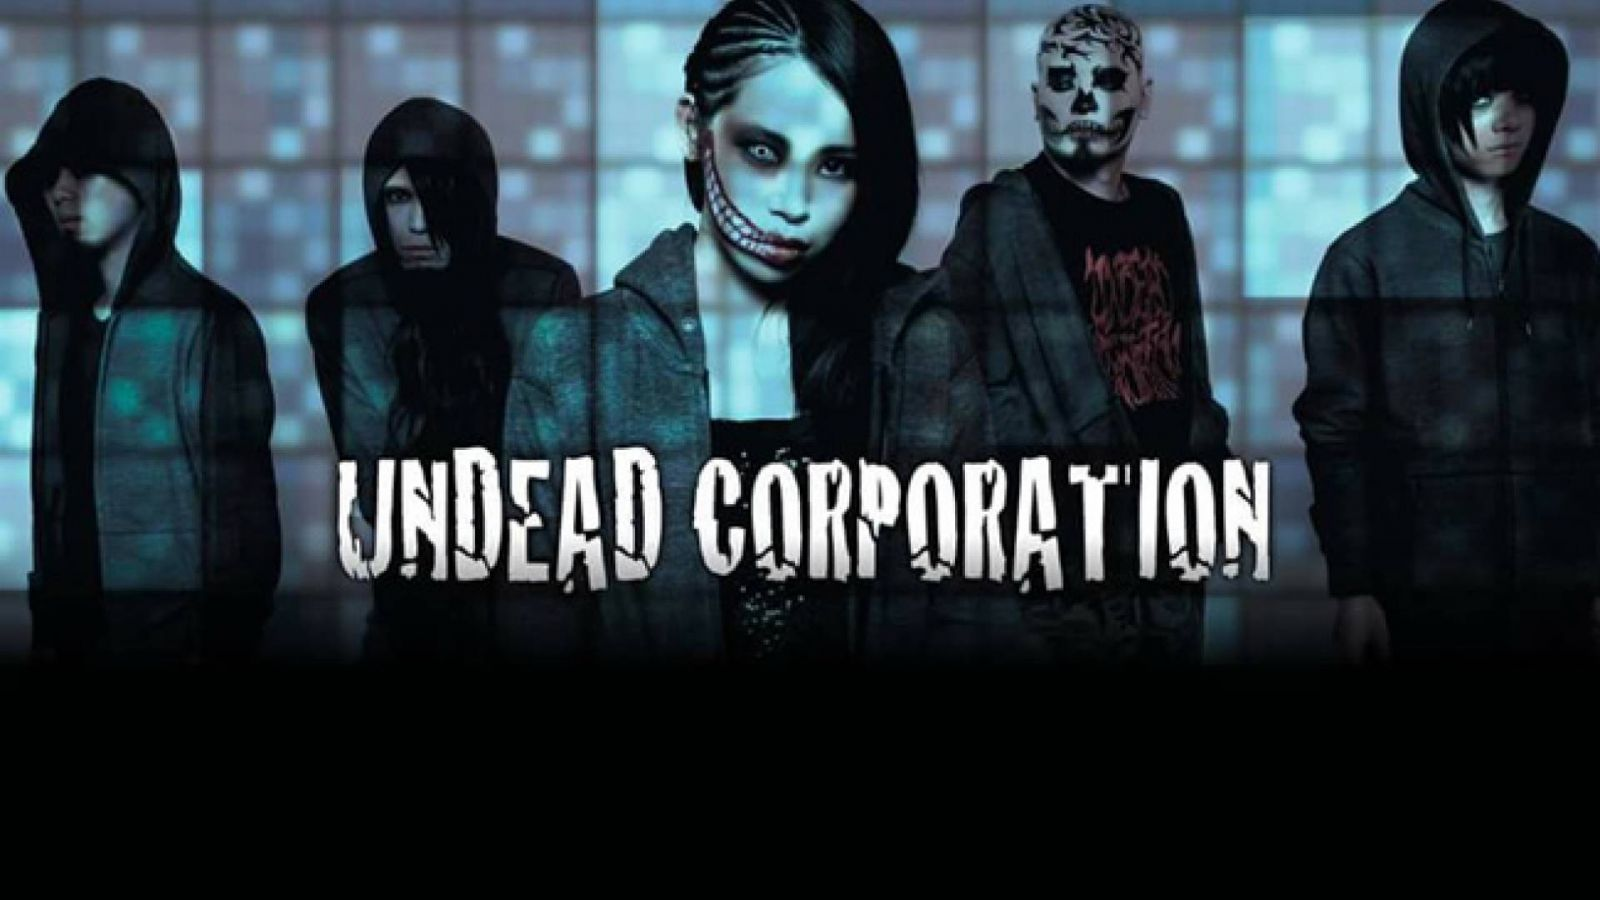 New Mini-Album from UNDEAD CORPORATION © 2015 UNDEAD CORPORATION. All rights reserved.